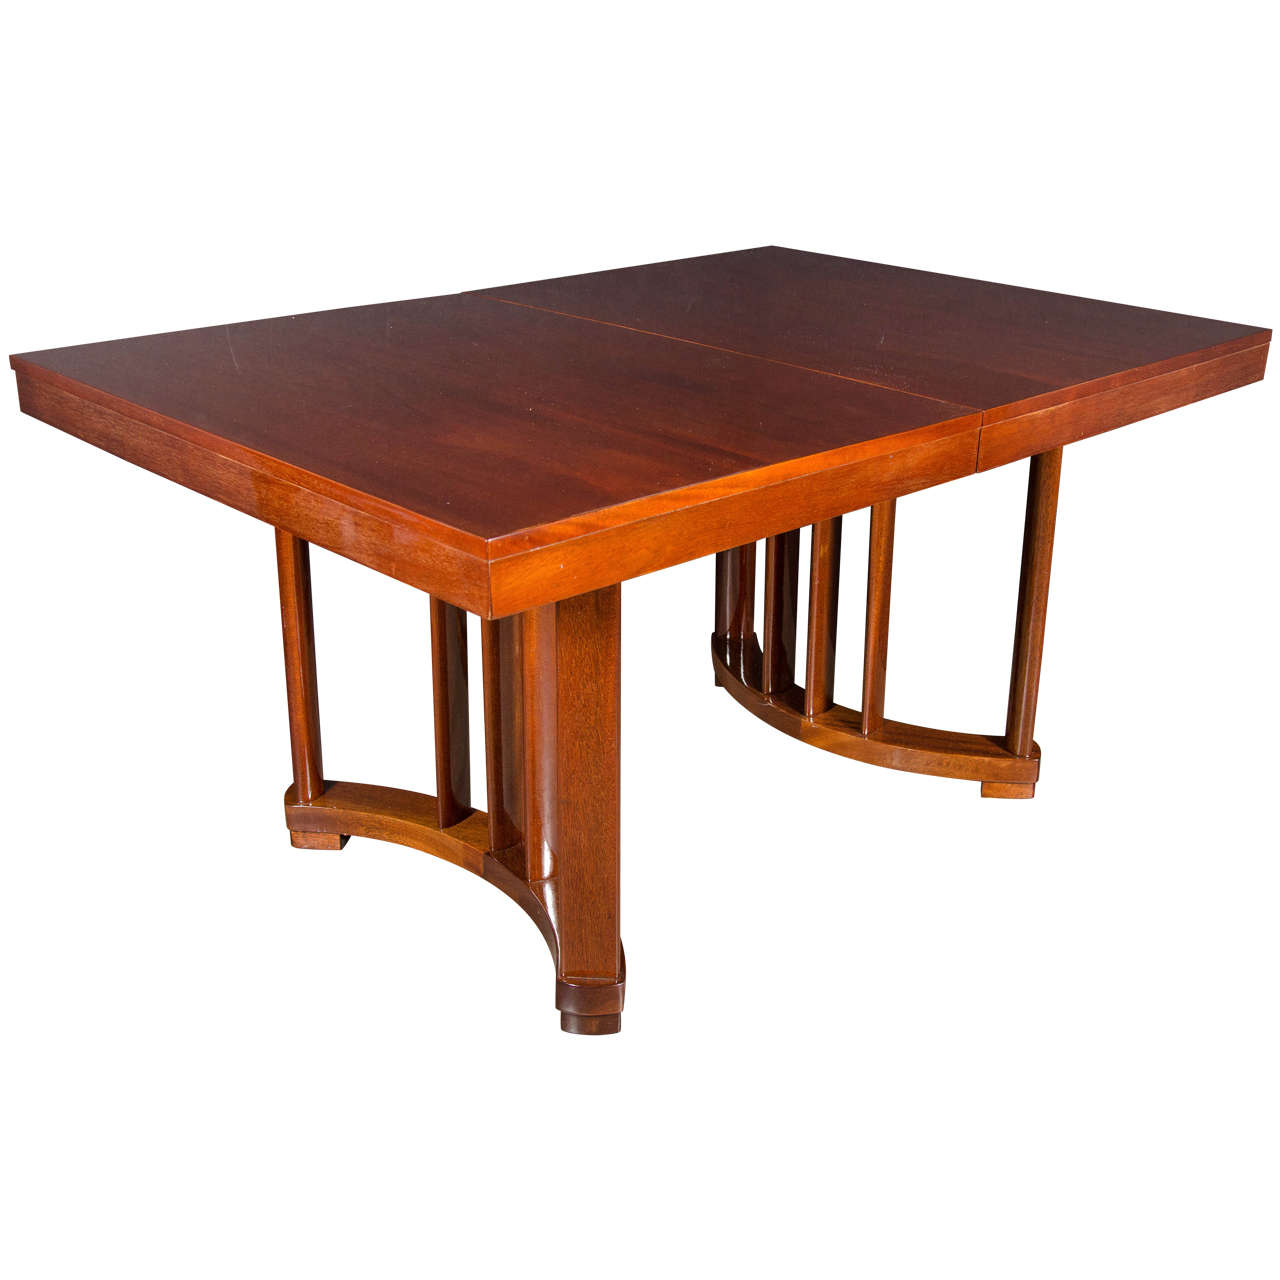 Art Deco Extension Dining Table in Mahogany with Opposing Arc Form Base